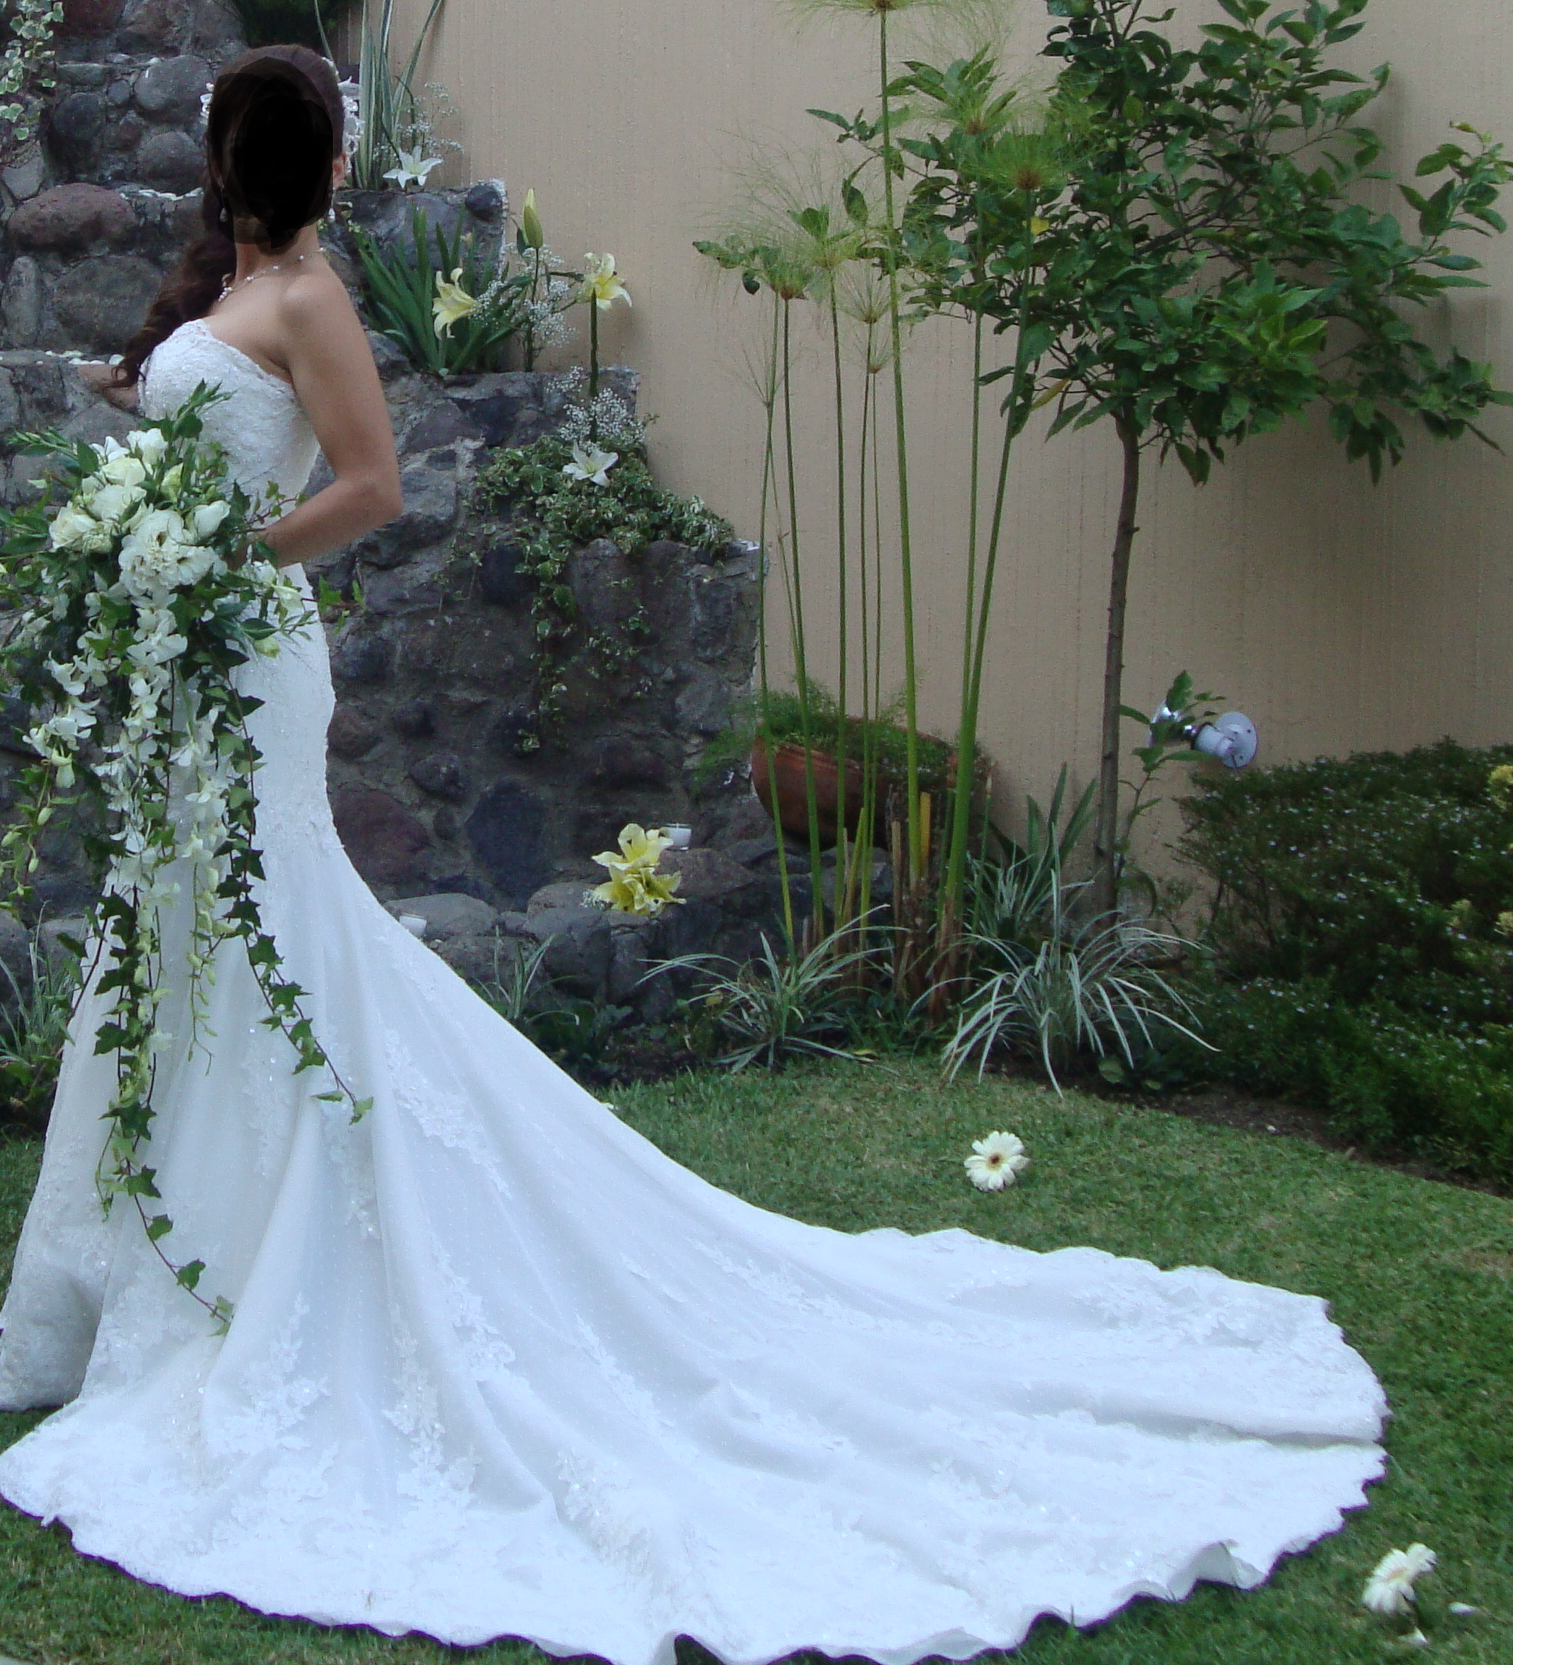 Vestidos de novia briden formal usados